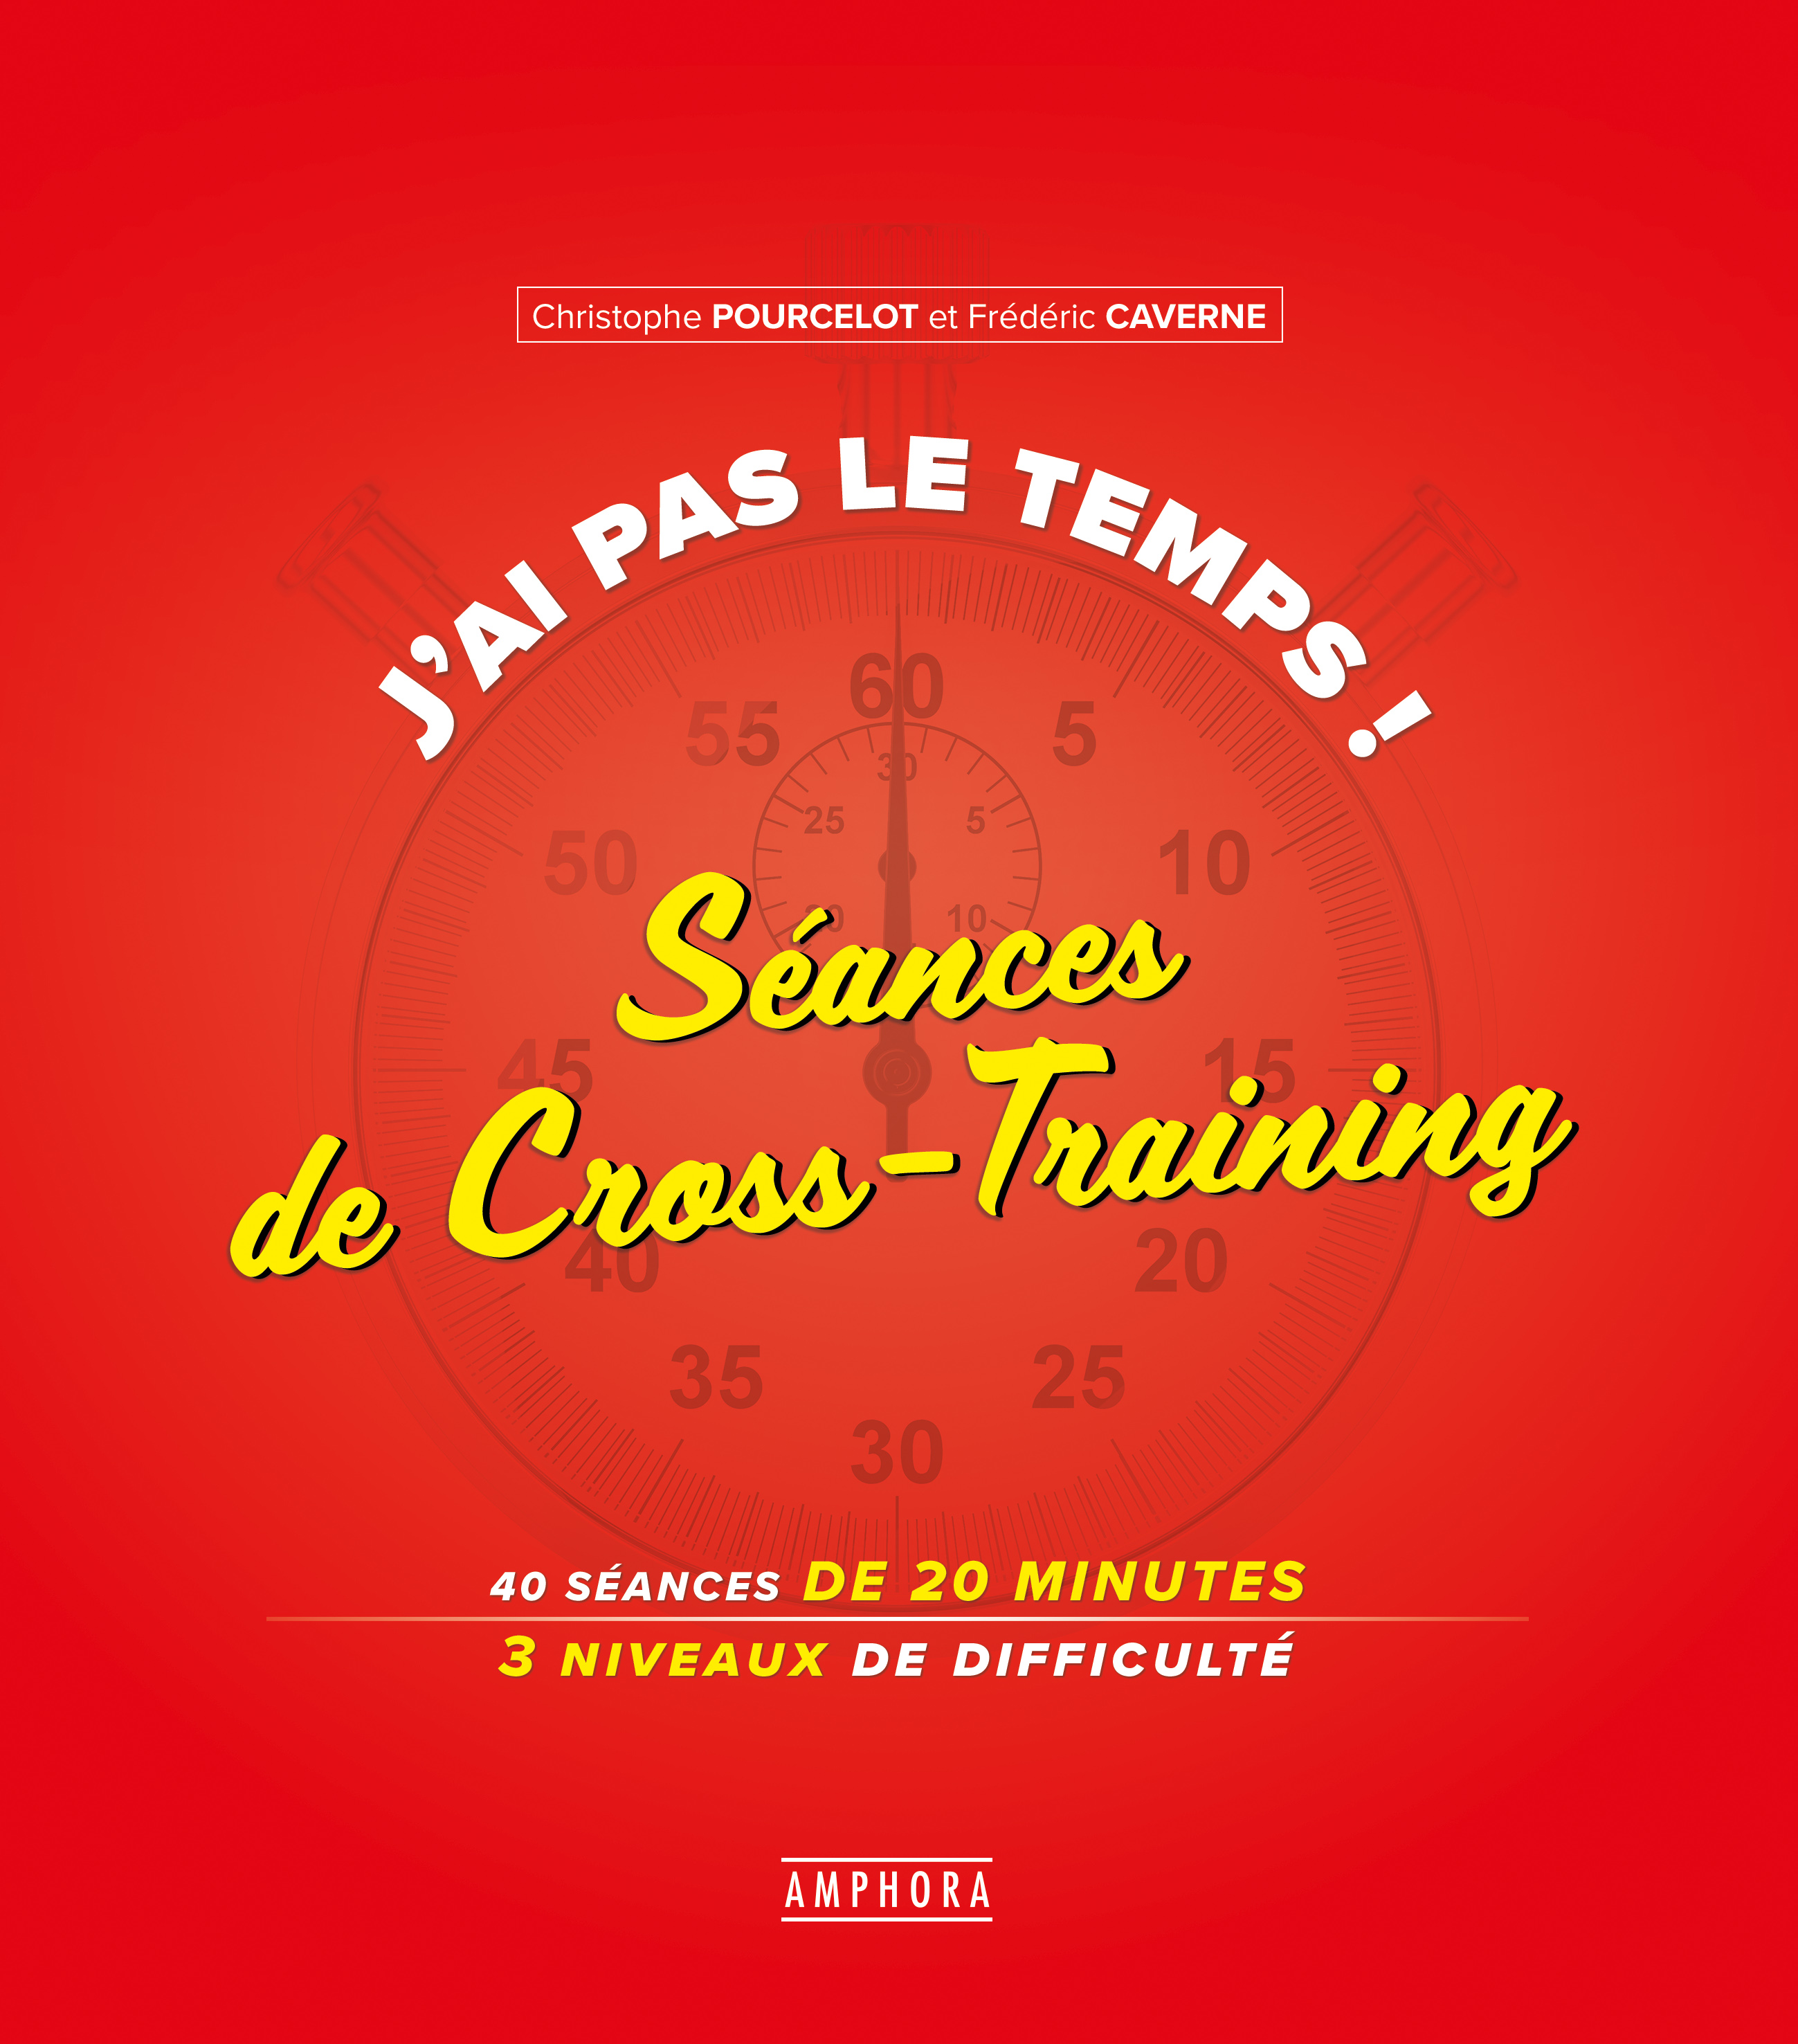 J'ai pas le temps - Séances de Cross-Training